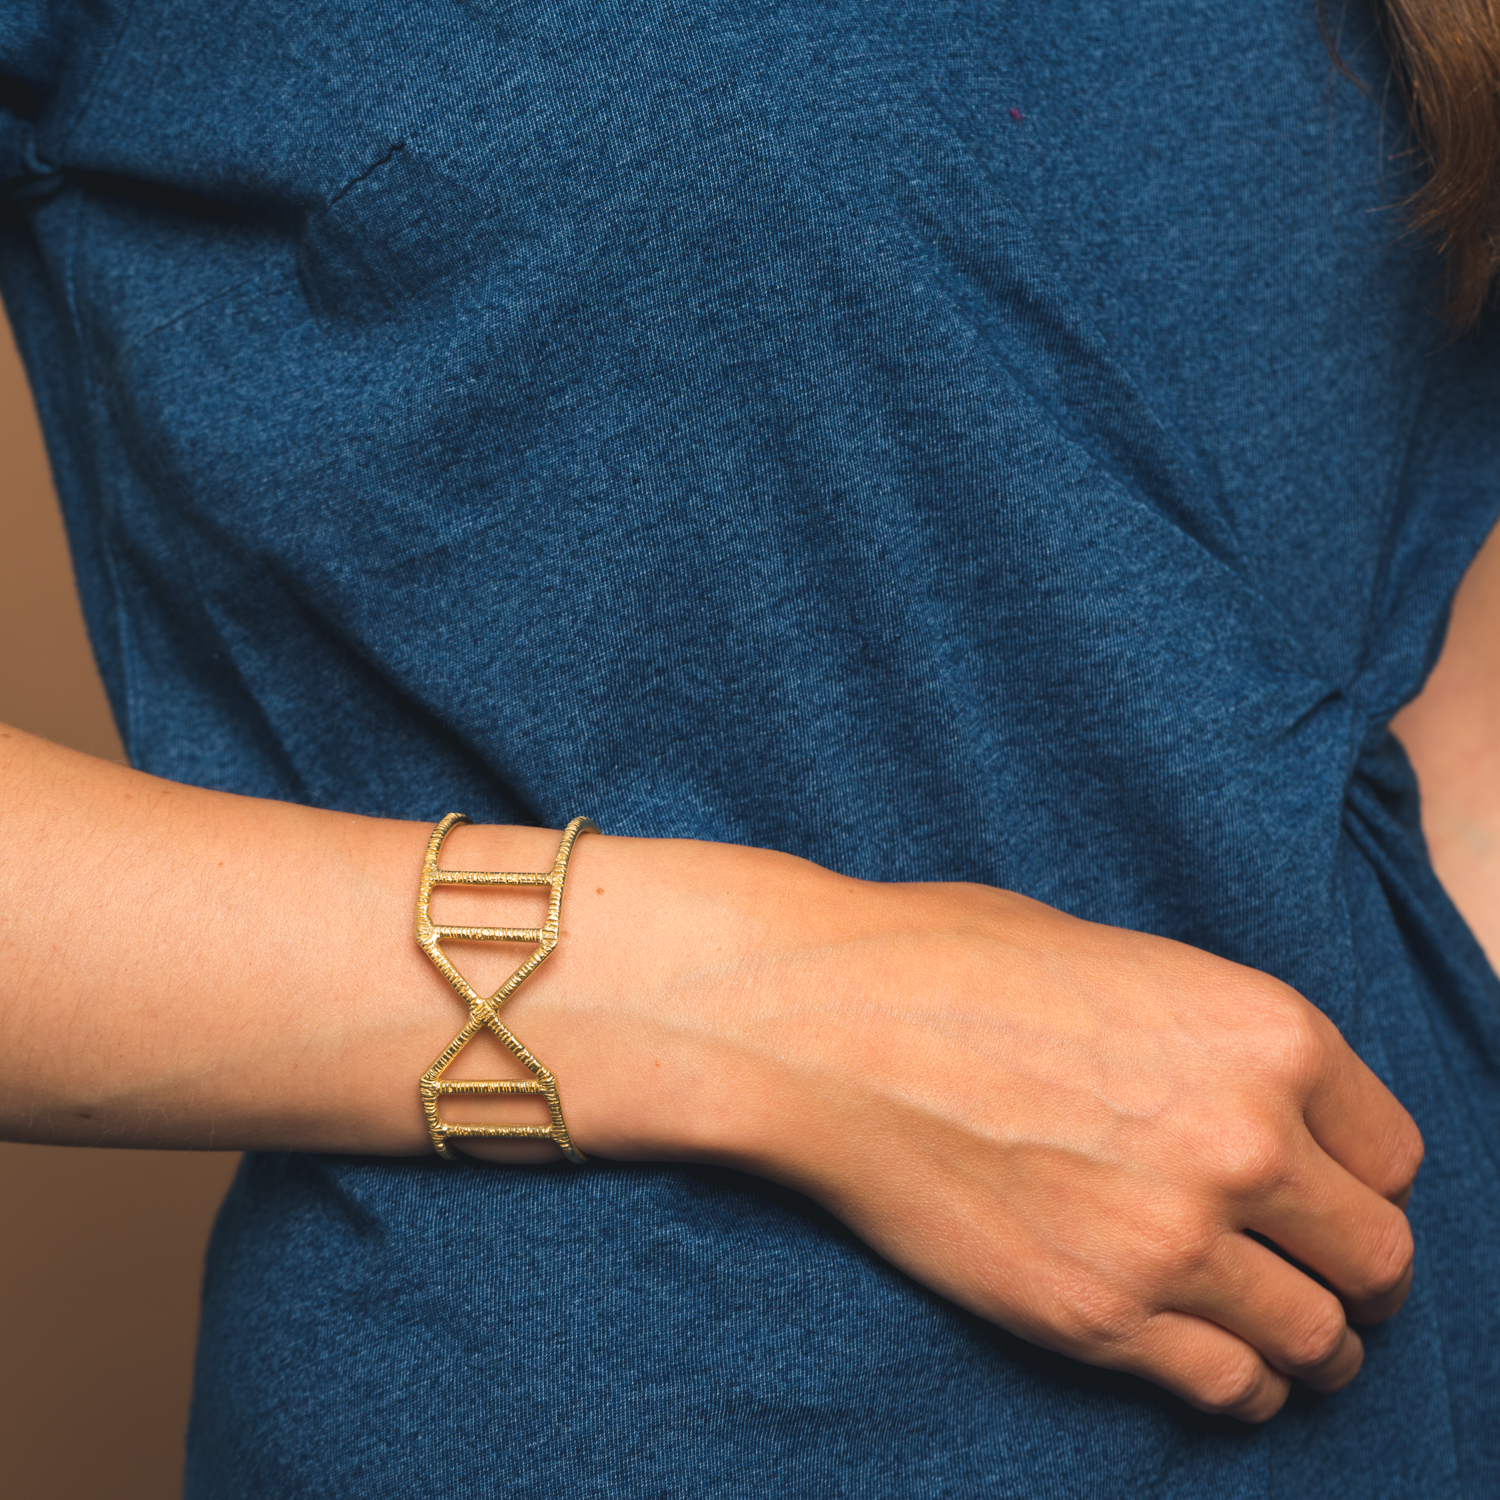 Goldeluxe Jewelry - Handmade minimalist and design forward jewelry designed for every day wear.